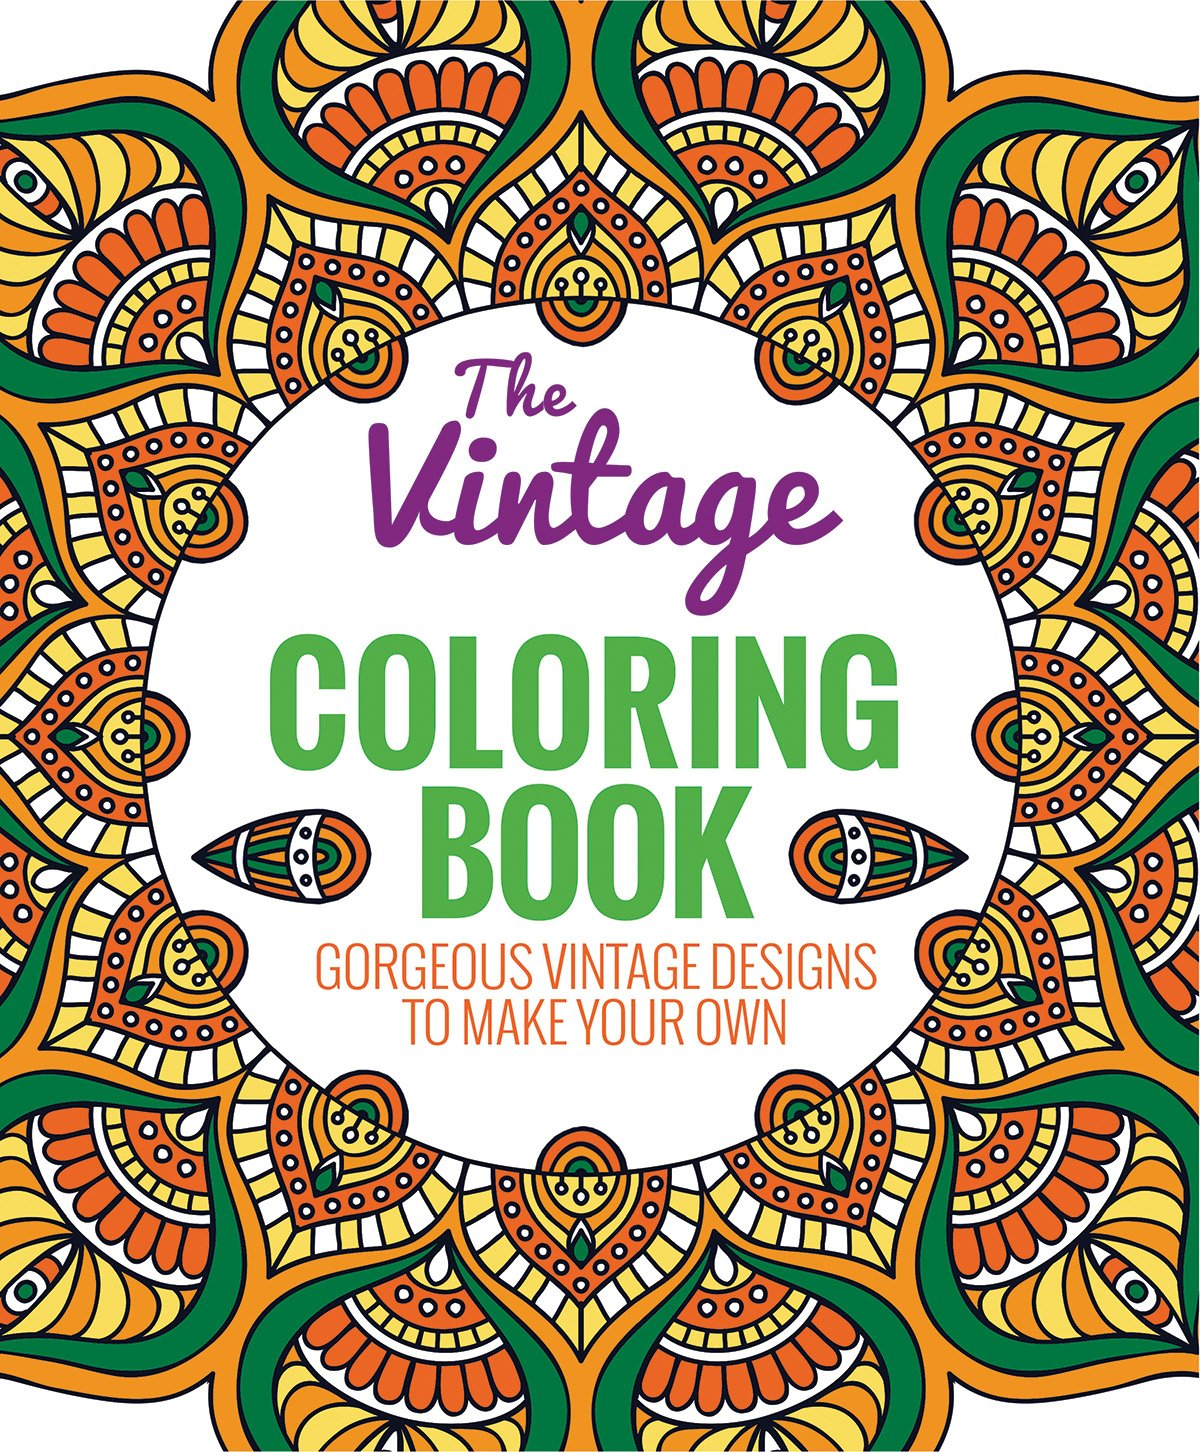 Amazon.com: The Vintage Coloring Book: Gorgeous Vintage Designs to ...